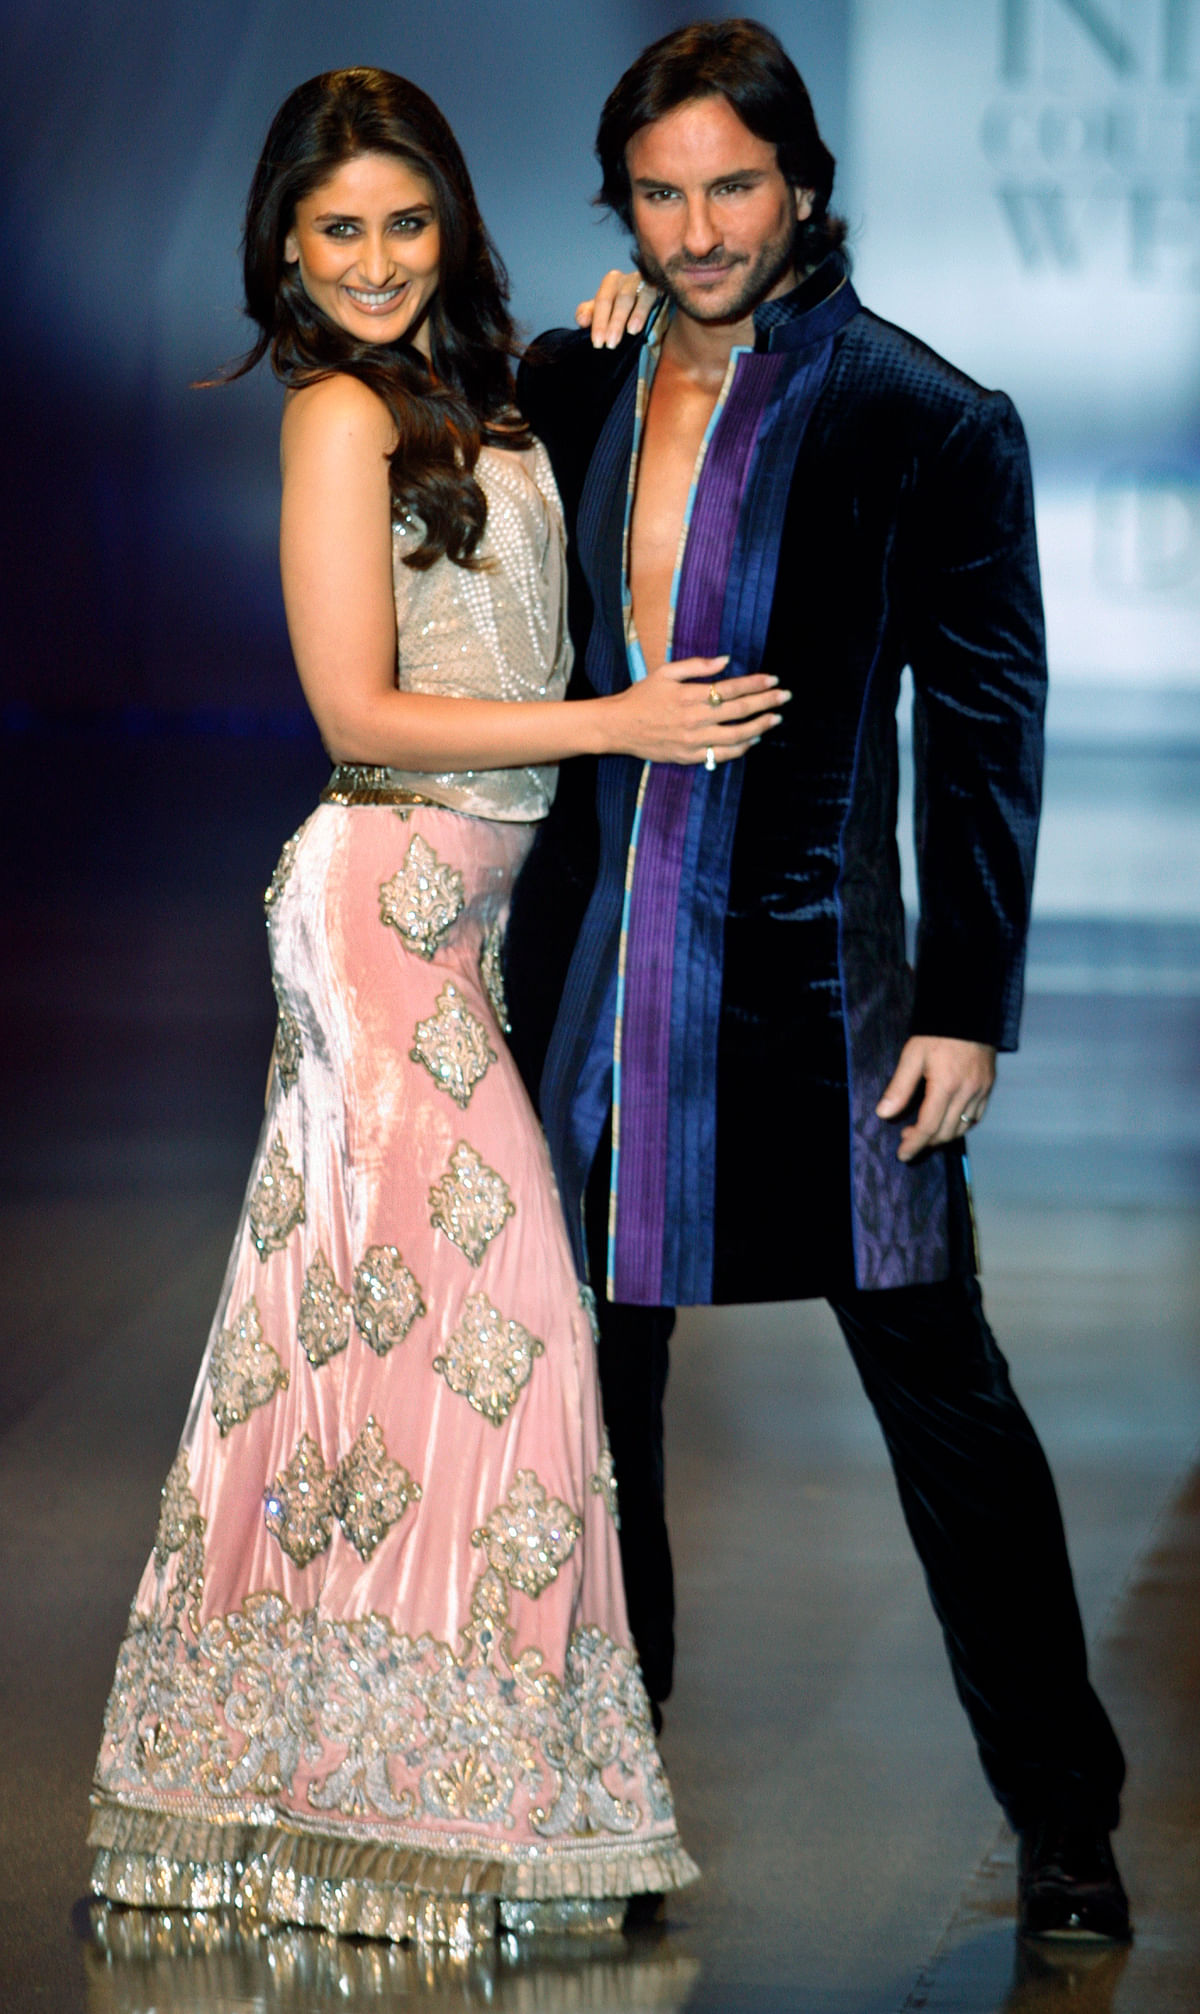 Saif Ali Khan with Kareena Kapoor, with whom he is expecting their first child. (Photo: Reuters)